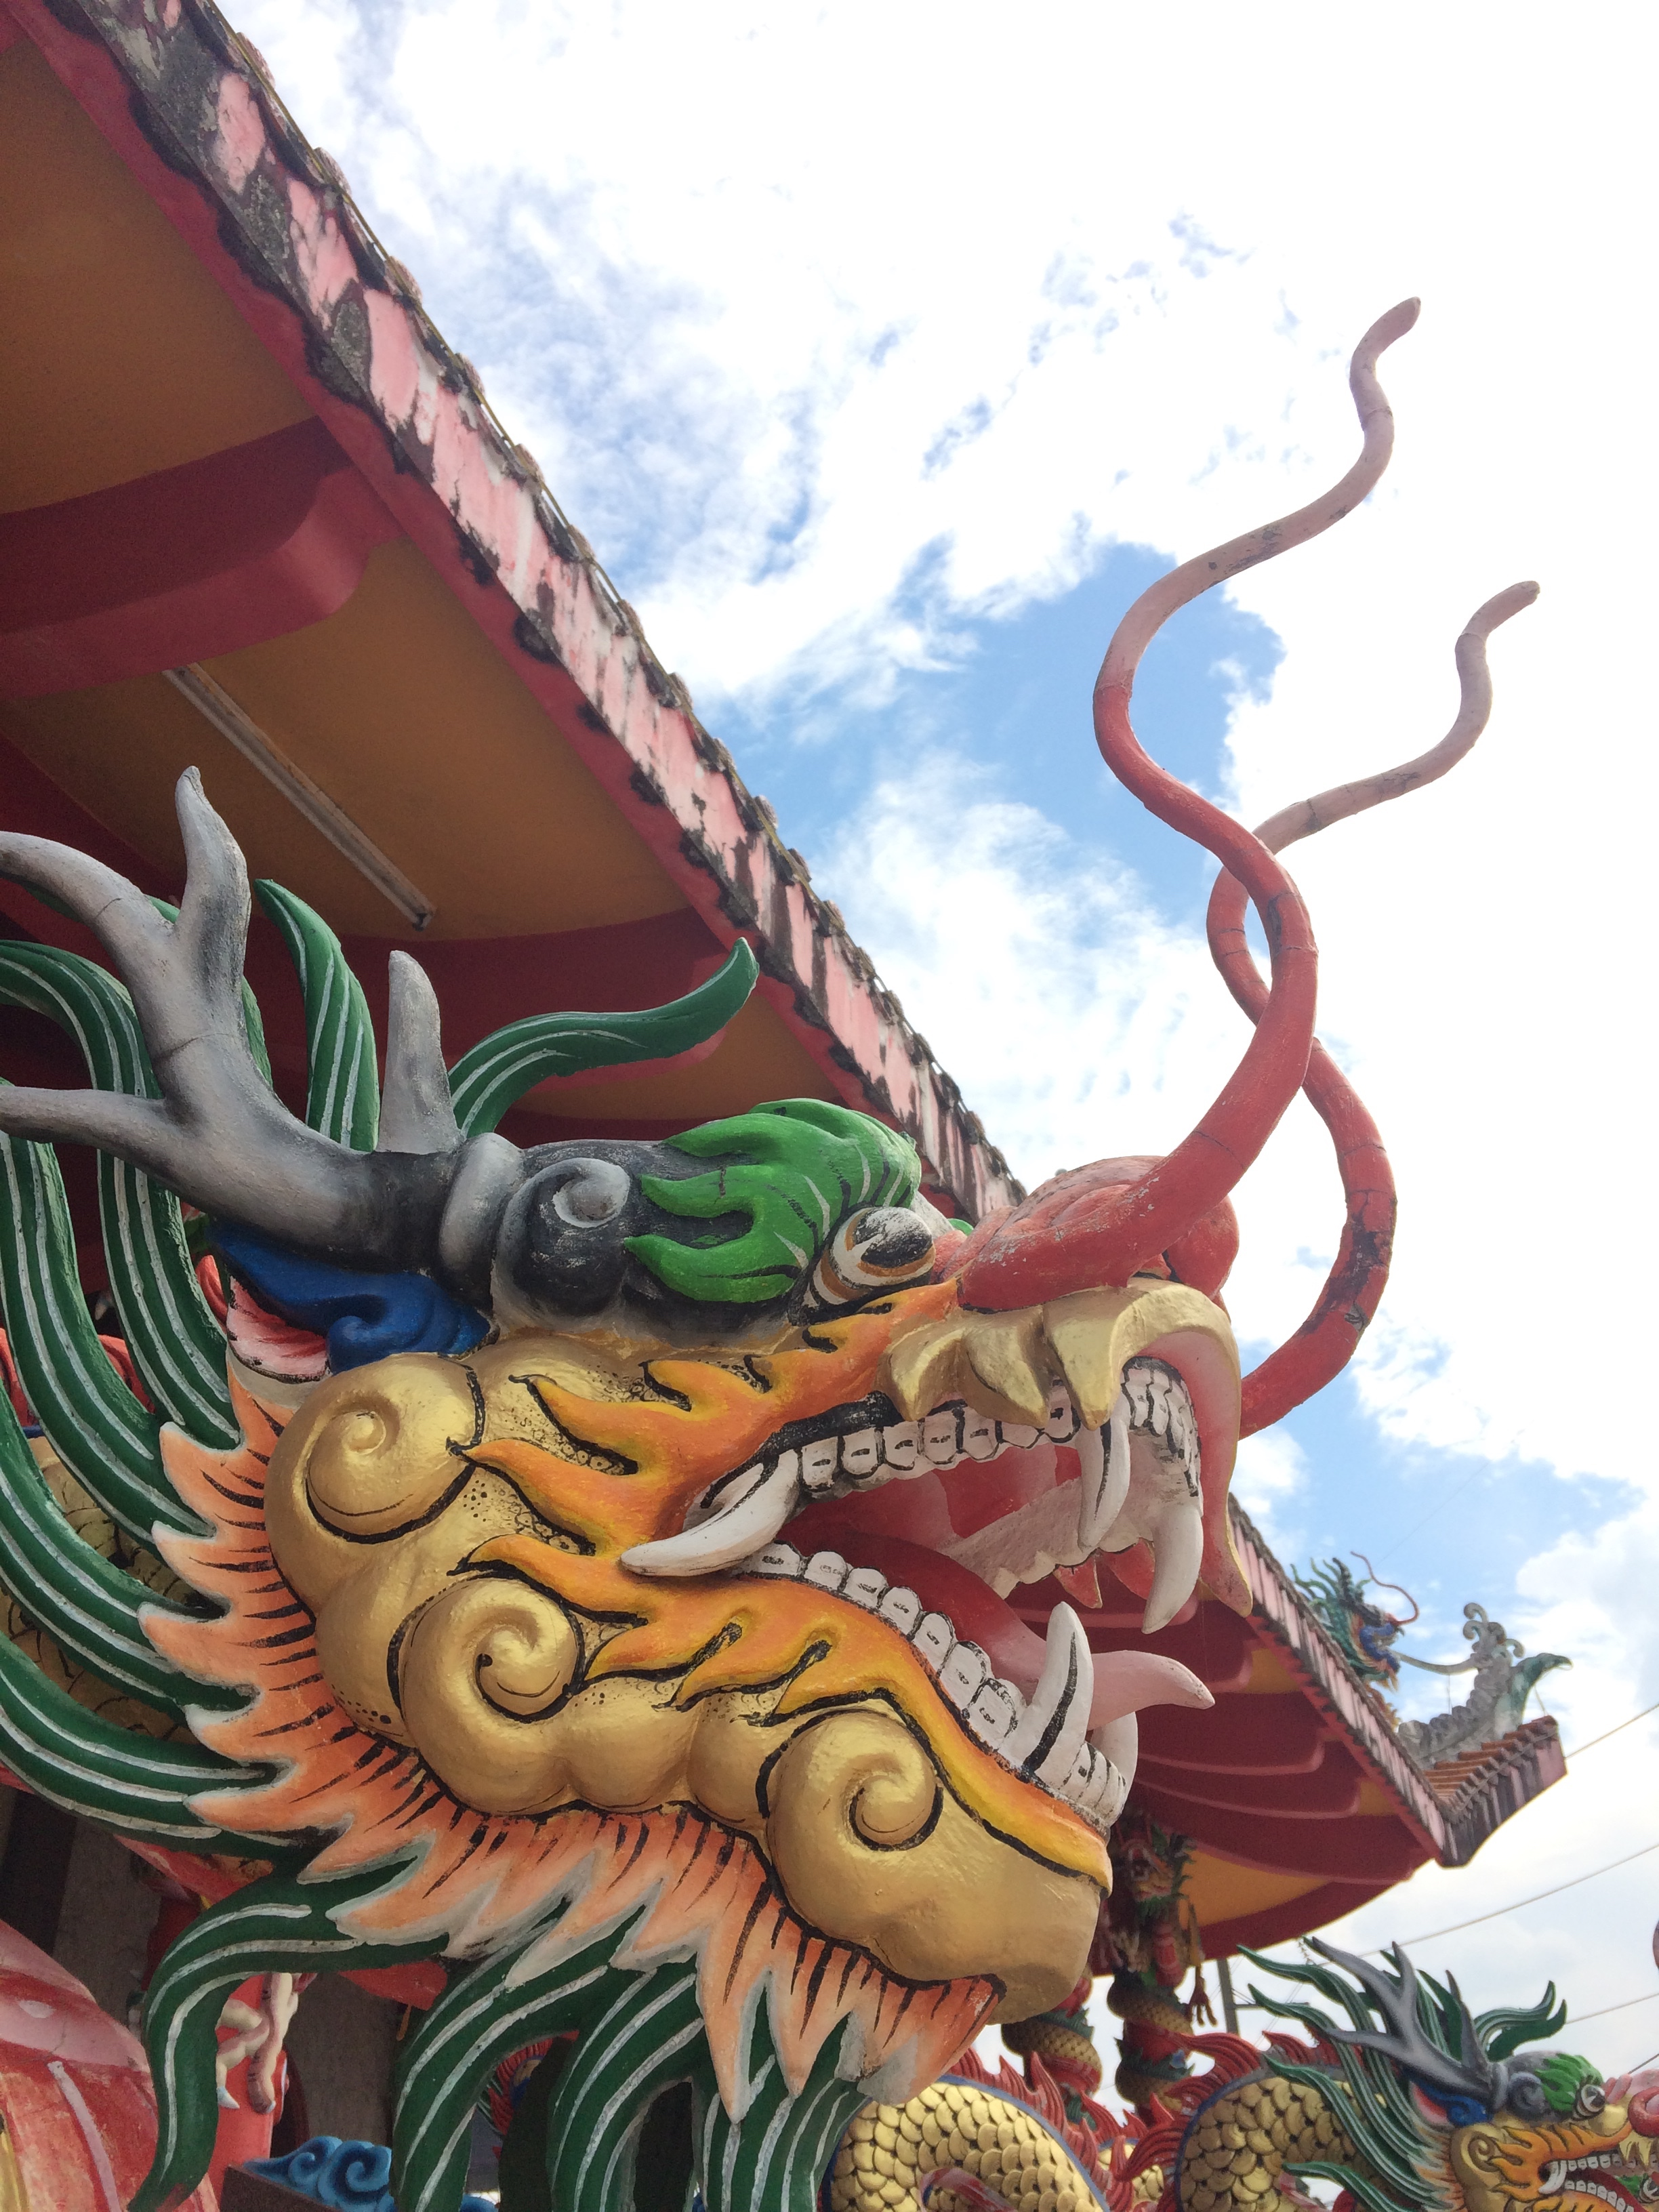 The Chinese temple was much more decorated and ostentatious than the Thai temple.